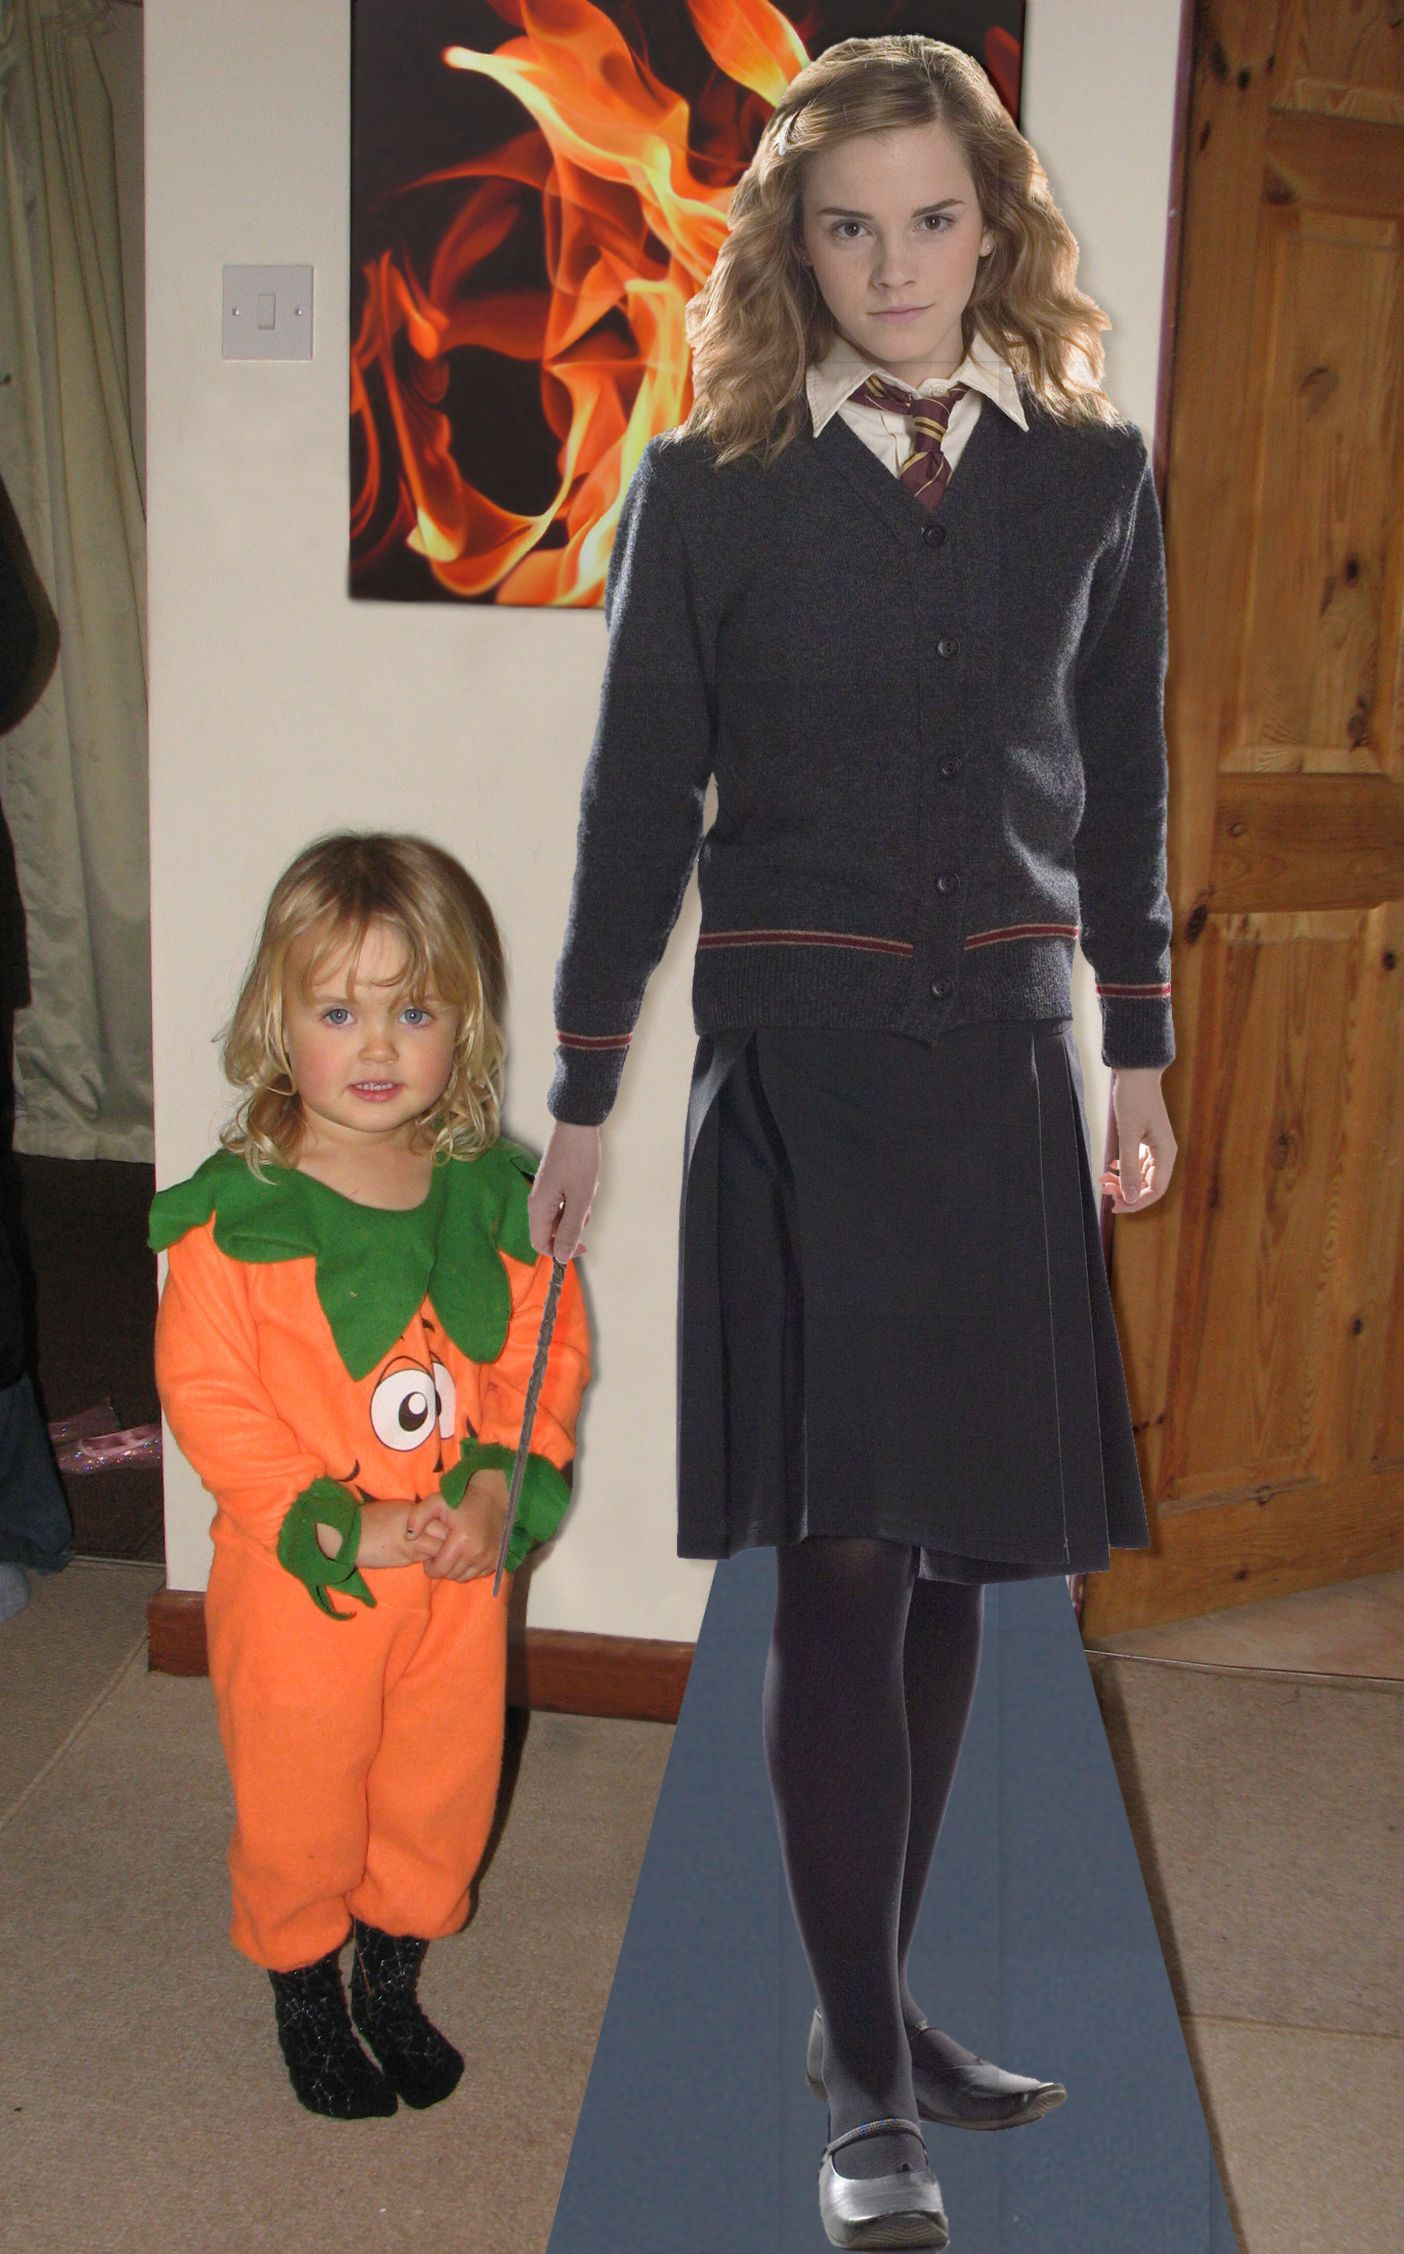 """Made a cardboard cutout  """"My daughter's birthday was SUCH fantastic fun, we made all the Hogwarts wizards (except from Slytherin of course!) and you really helped us to make her day with a life sized cutout of her favourite wizard of all time, Hermione Granger.  Smilus Engorgio! – Amy UK"""""""